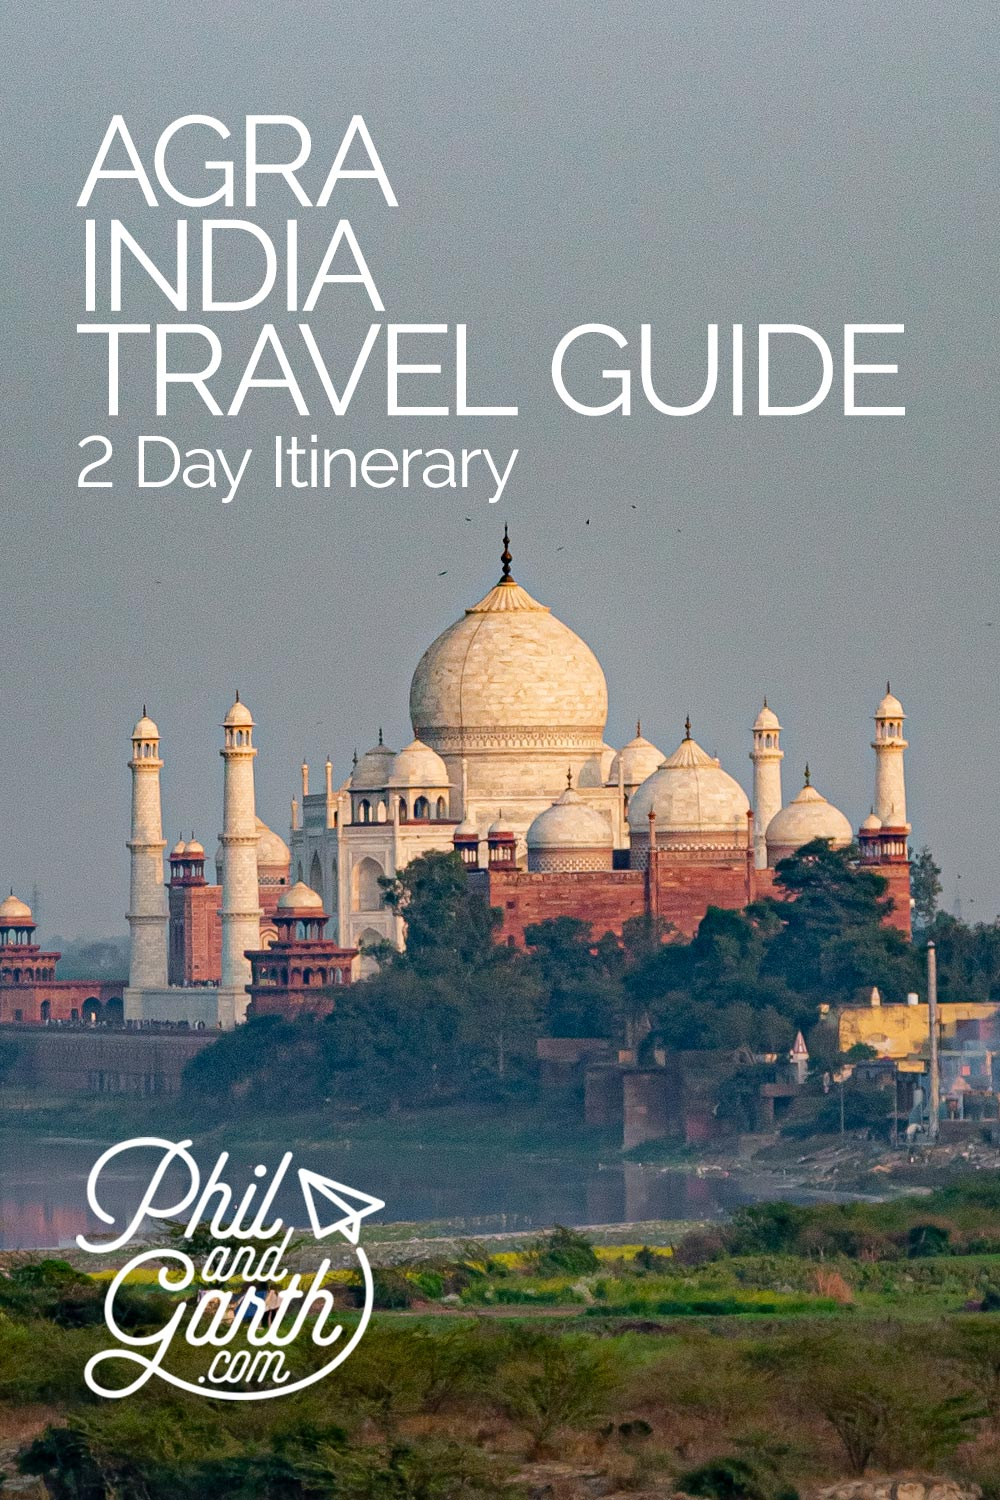 Agra Itinerary - 2 Days of famous places by Phil and Garth